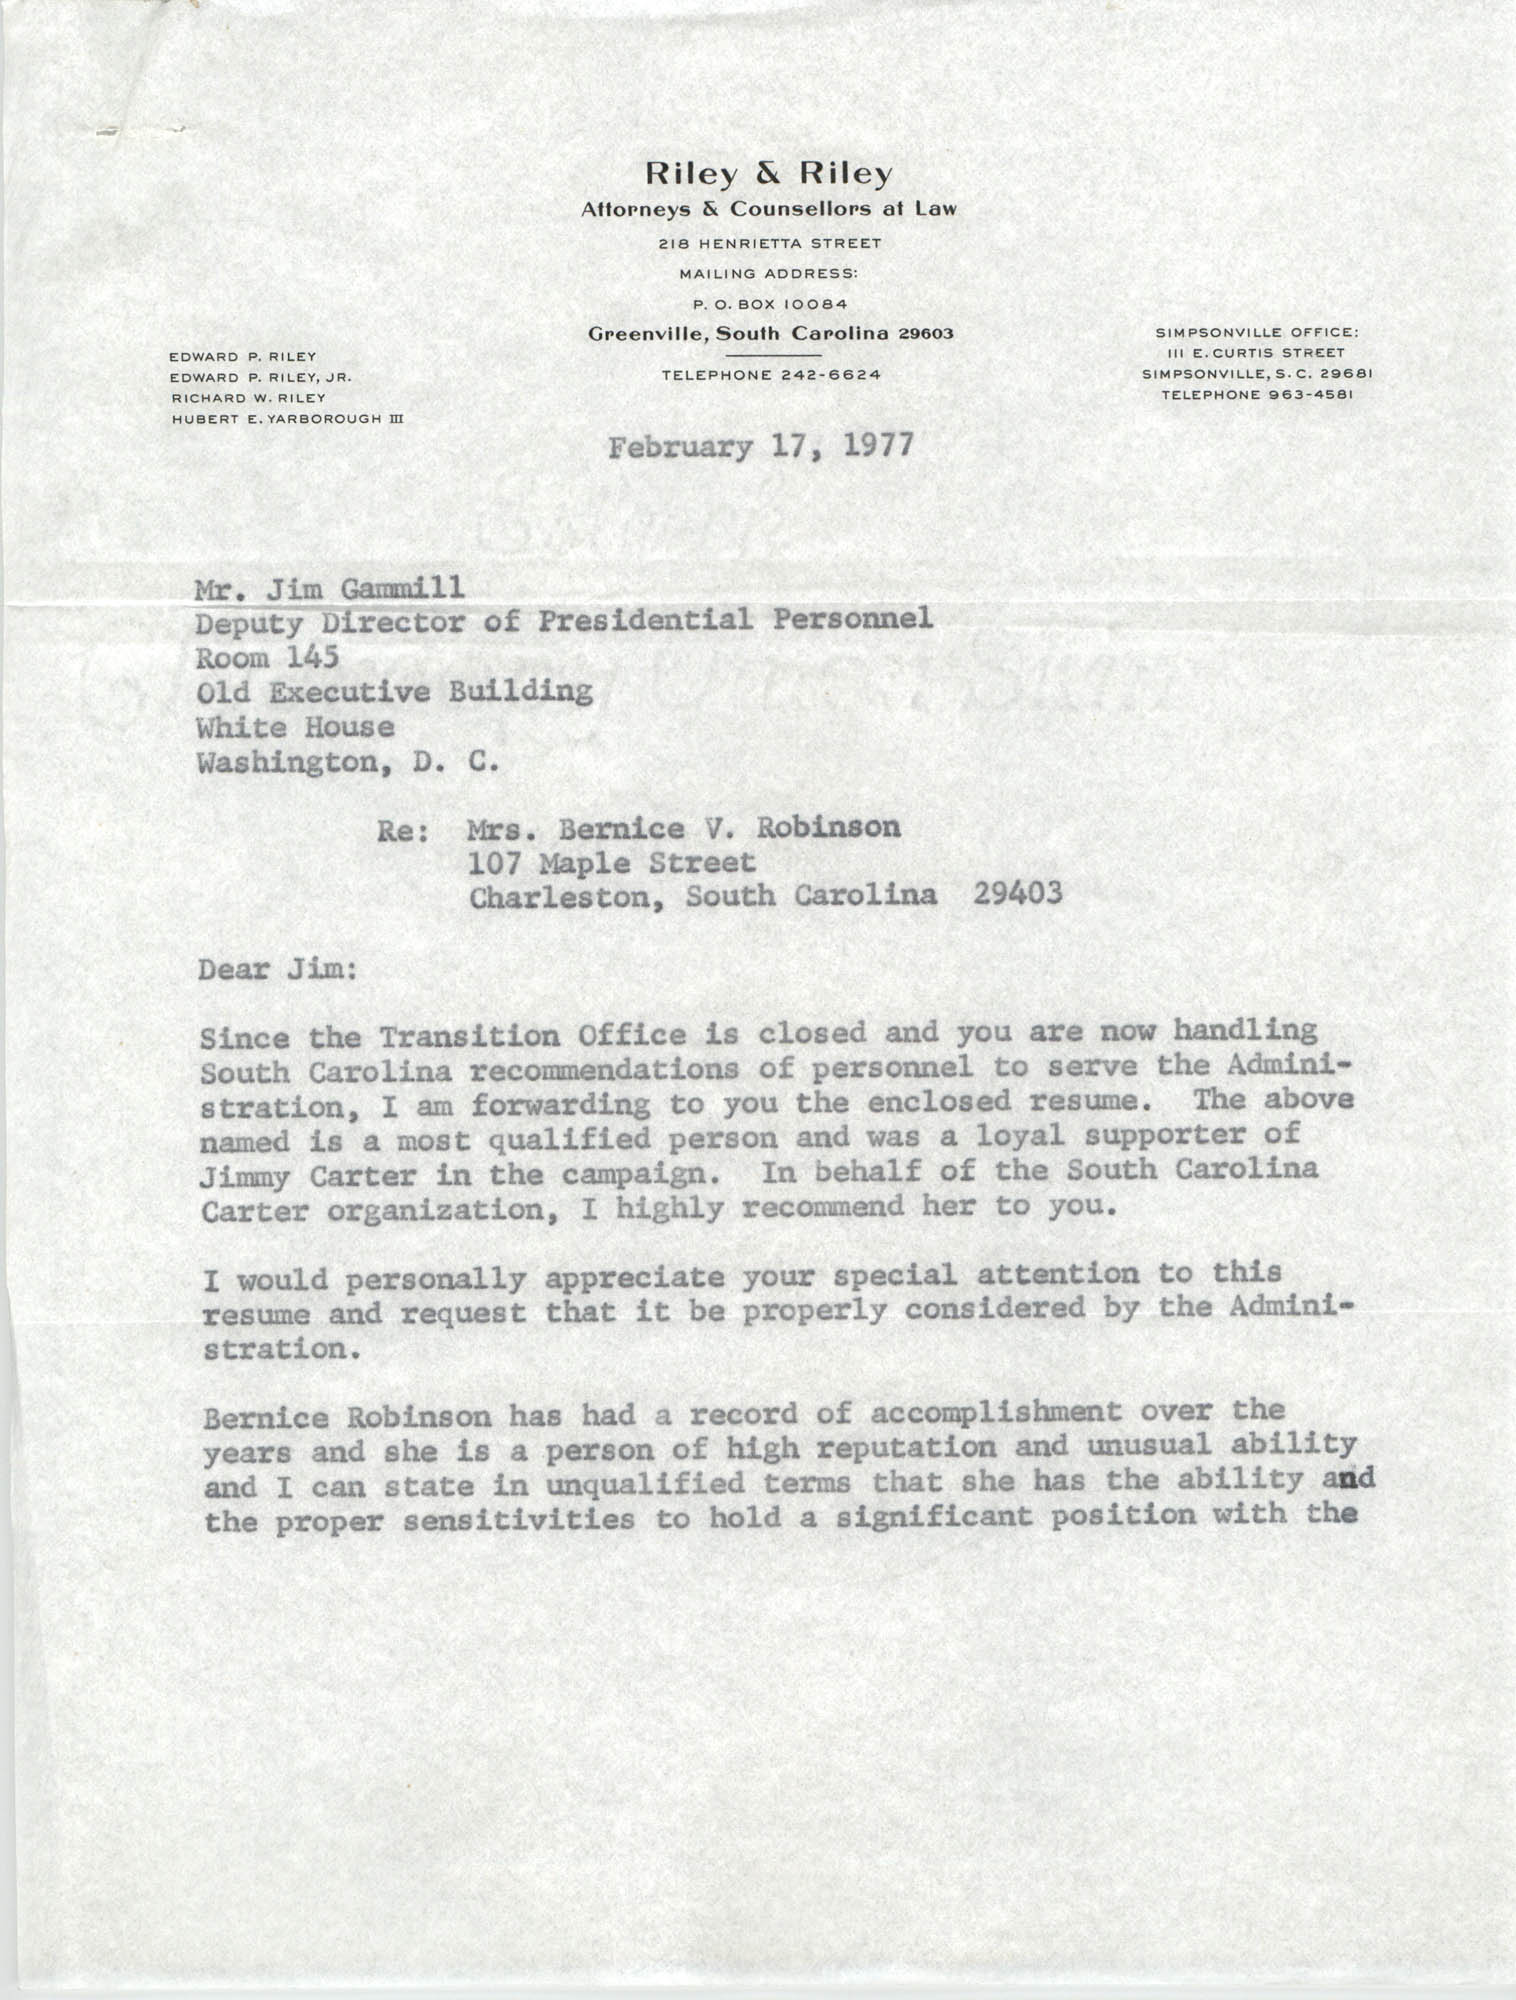 Letter from Richard W. Riley to Jim Gammill and Bernice V. Robinson, February 17, 1977